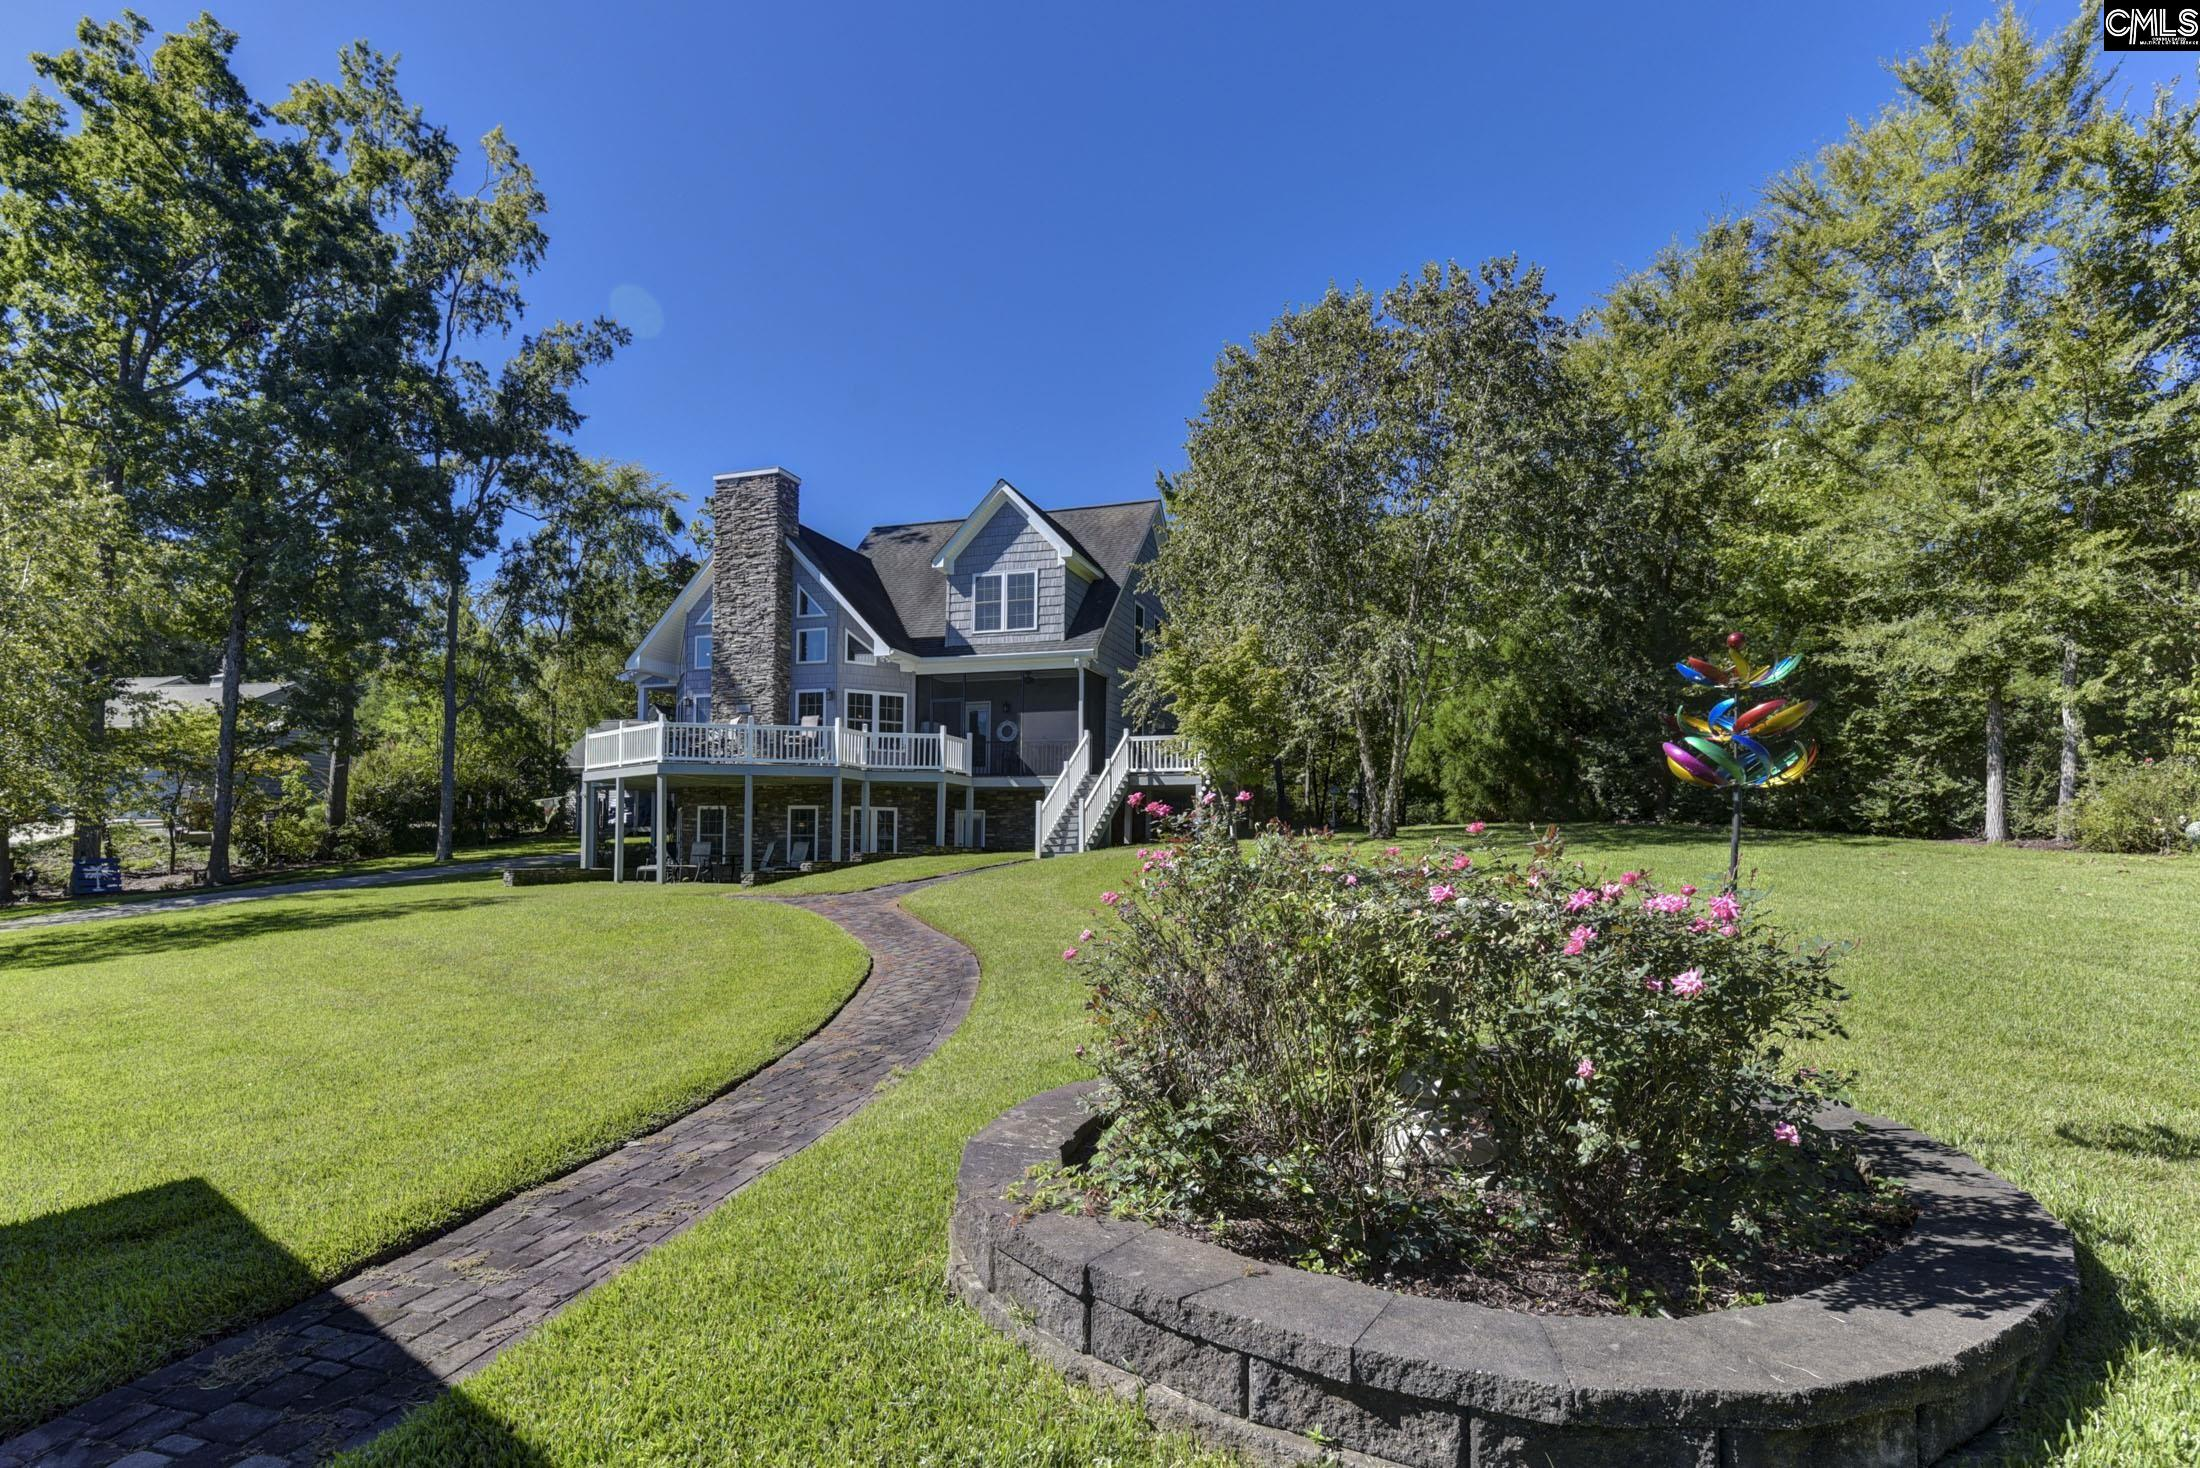 Welcome home!  This beautiful 2.5 story home on Lake Murray is waiting for you!  It includes a large backyard in a stunning cove.  When you walk down to the water, you'll find a large private covered dock.  Come see the home that makes everyday a vacation!